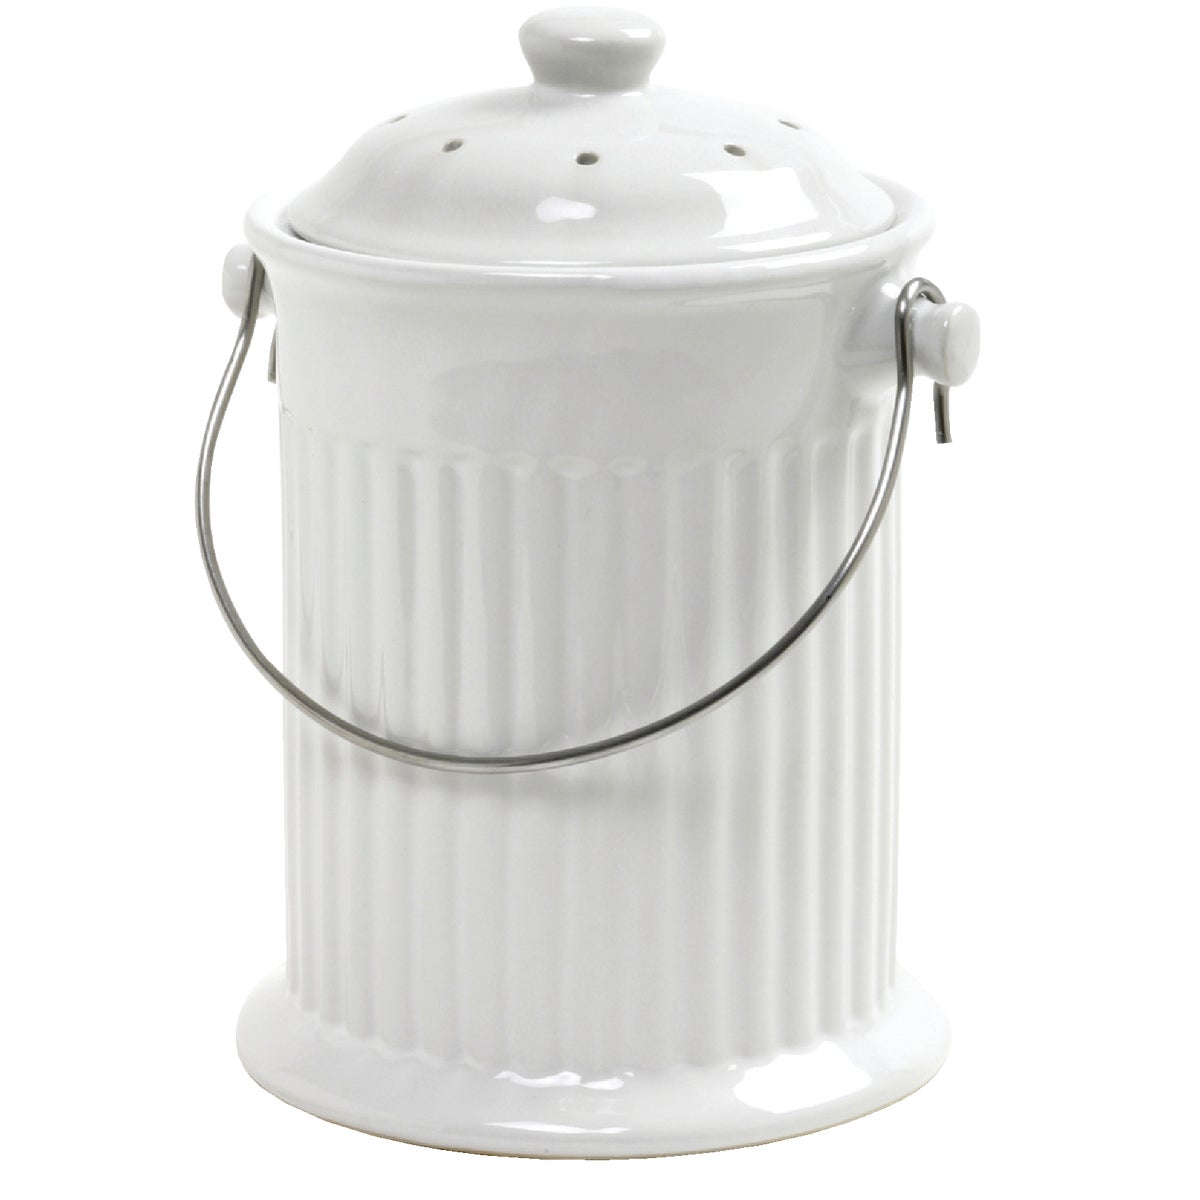 CERAMIC COMPOST KEEPER - 93 by Norpro